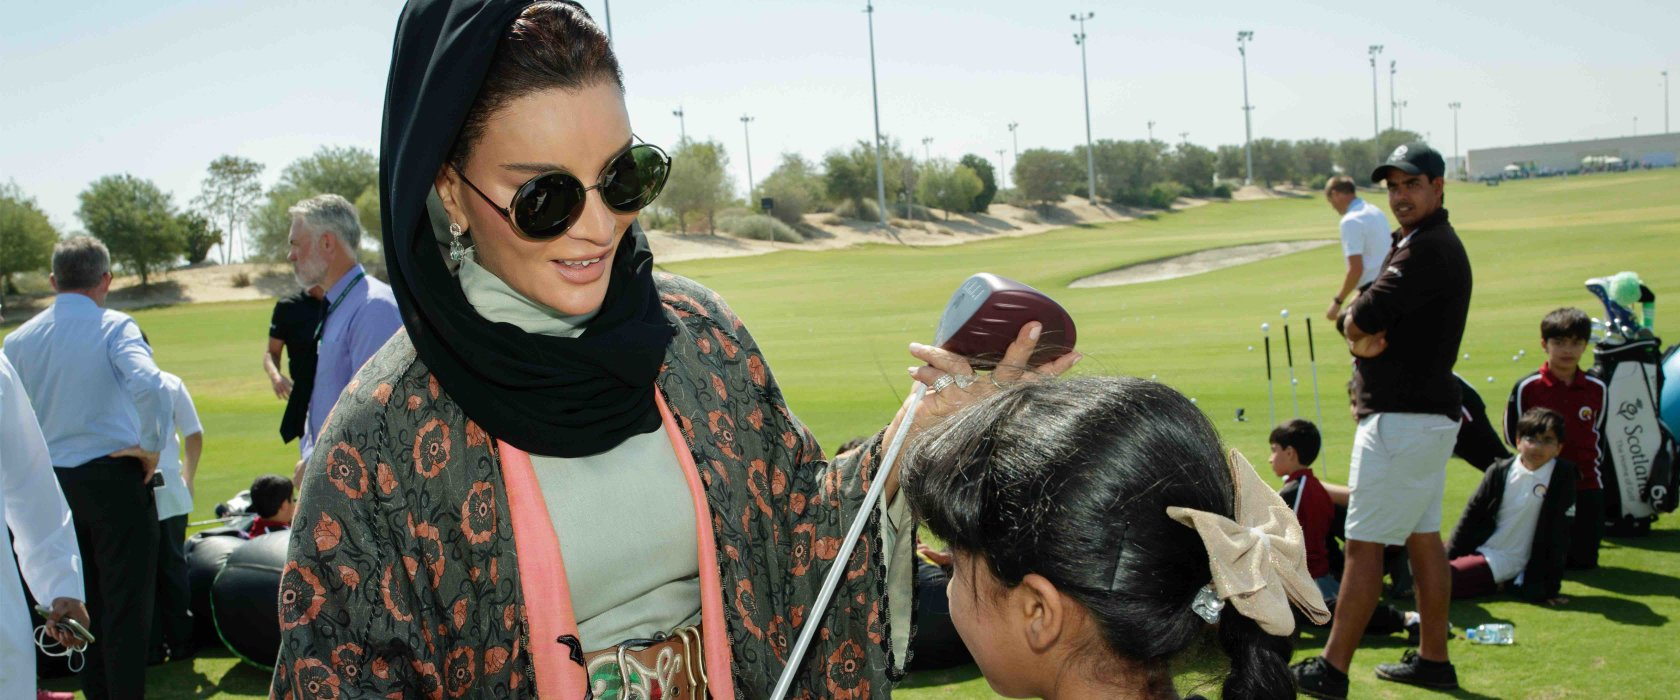 Her Highness Sheikha Moza bint Nasser attends opening of the Education City Golf Club